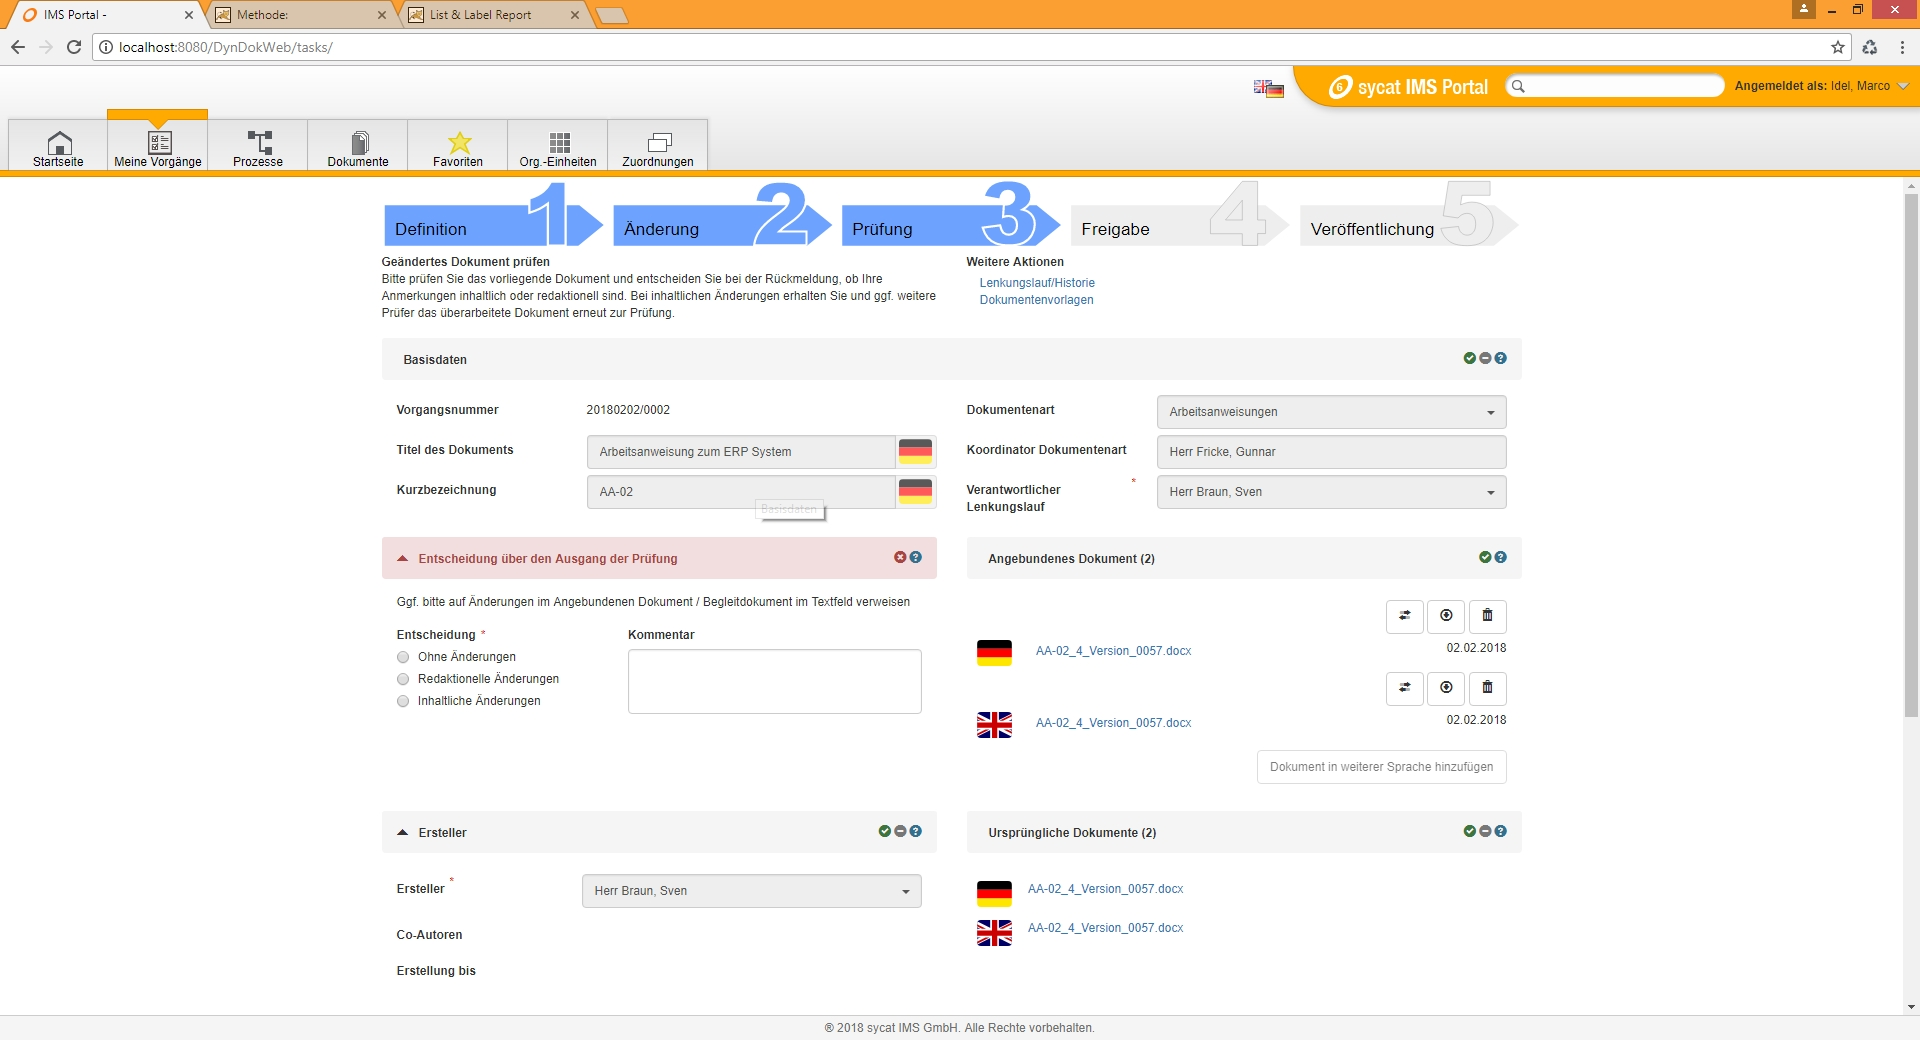 Workflow in einem Dokumentenmanagementsystem